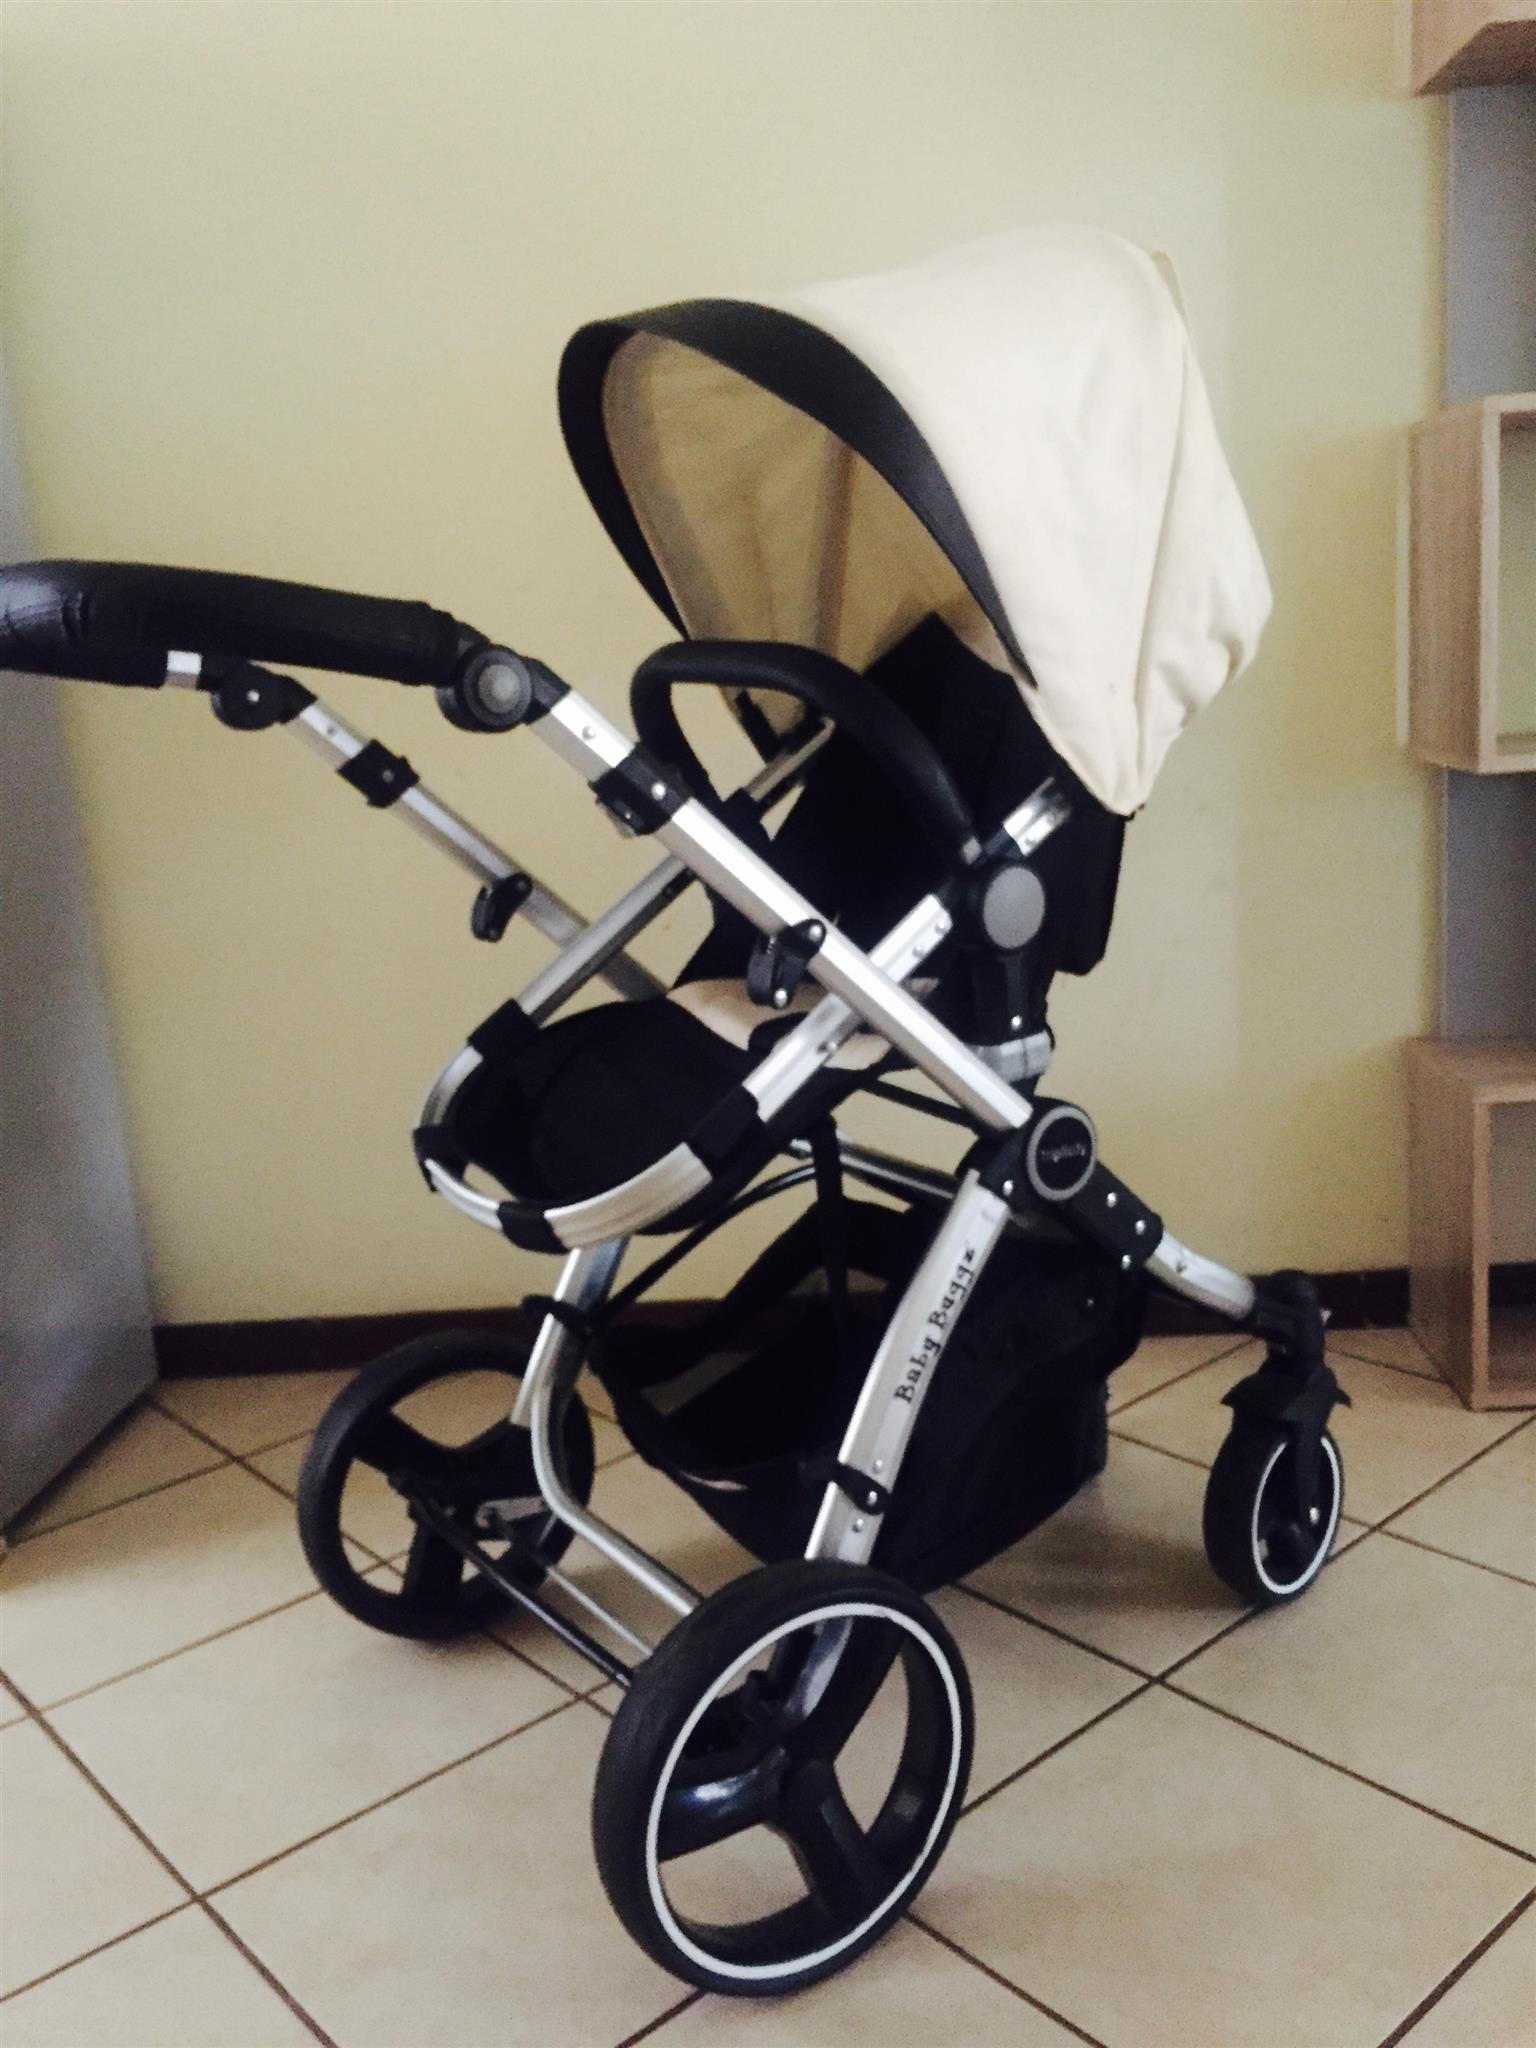 Secondhandused Babybuggz Triplicity 3in1 Travel System Junk Mail